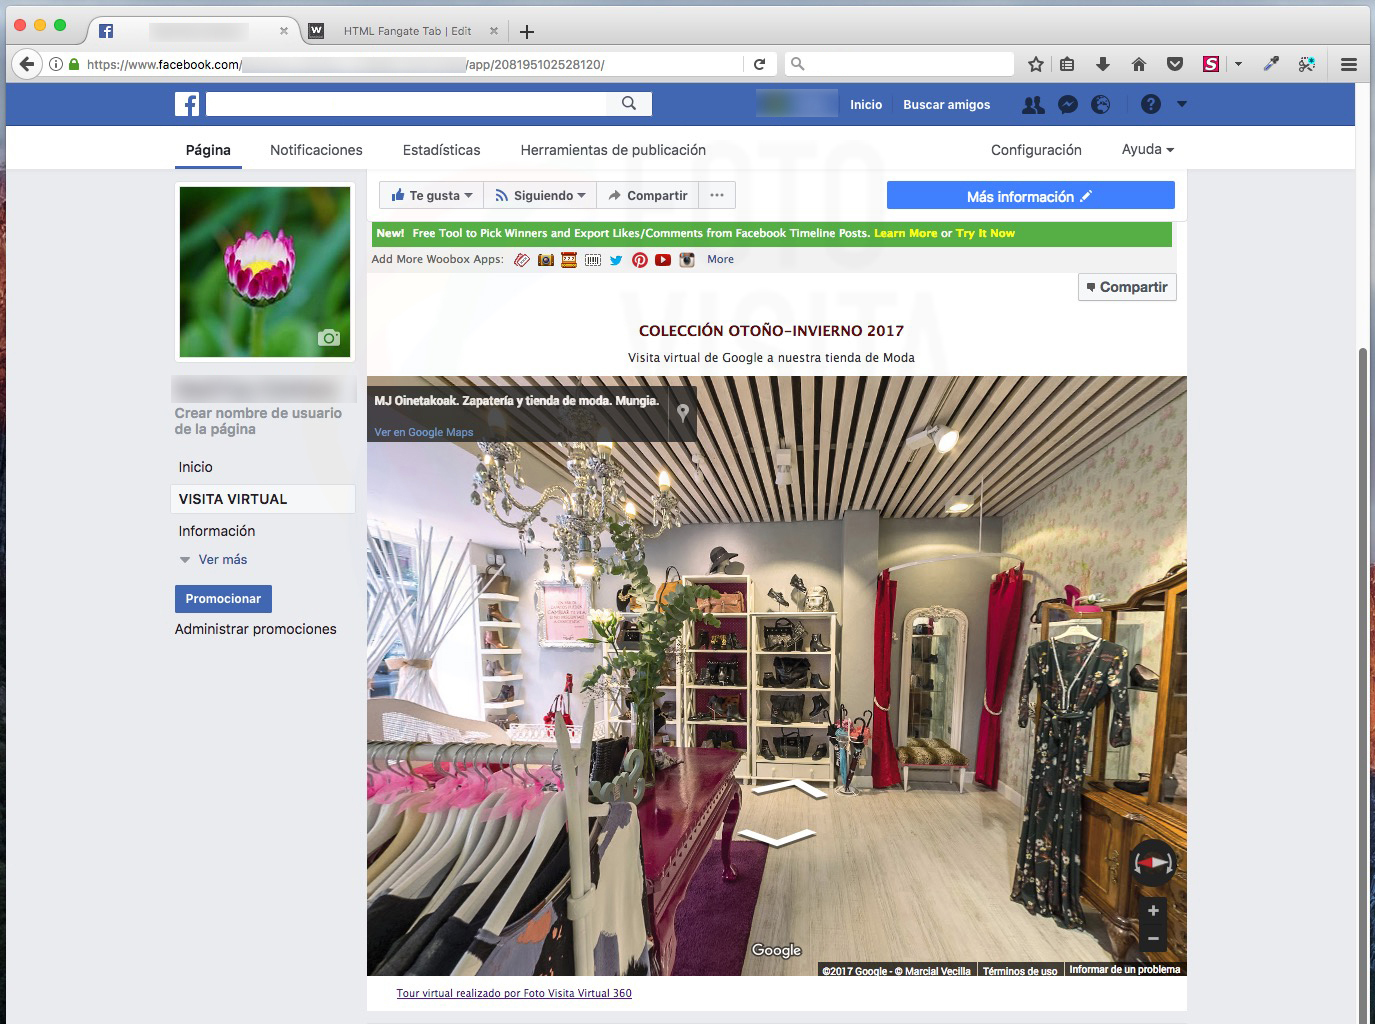 Visita virtual integrada en Facebook con titulares